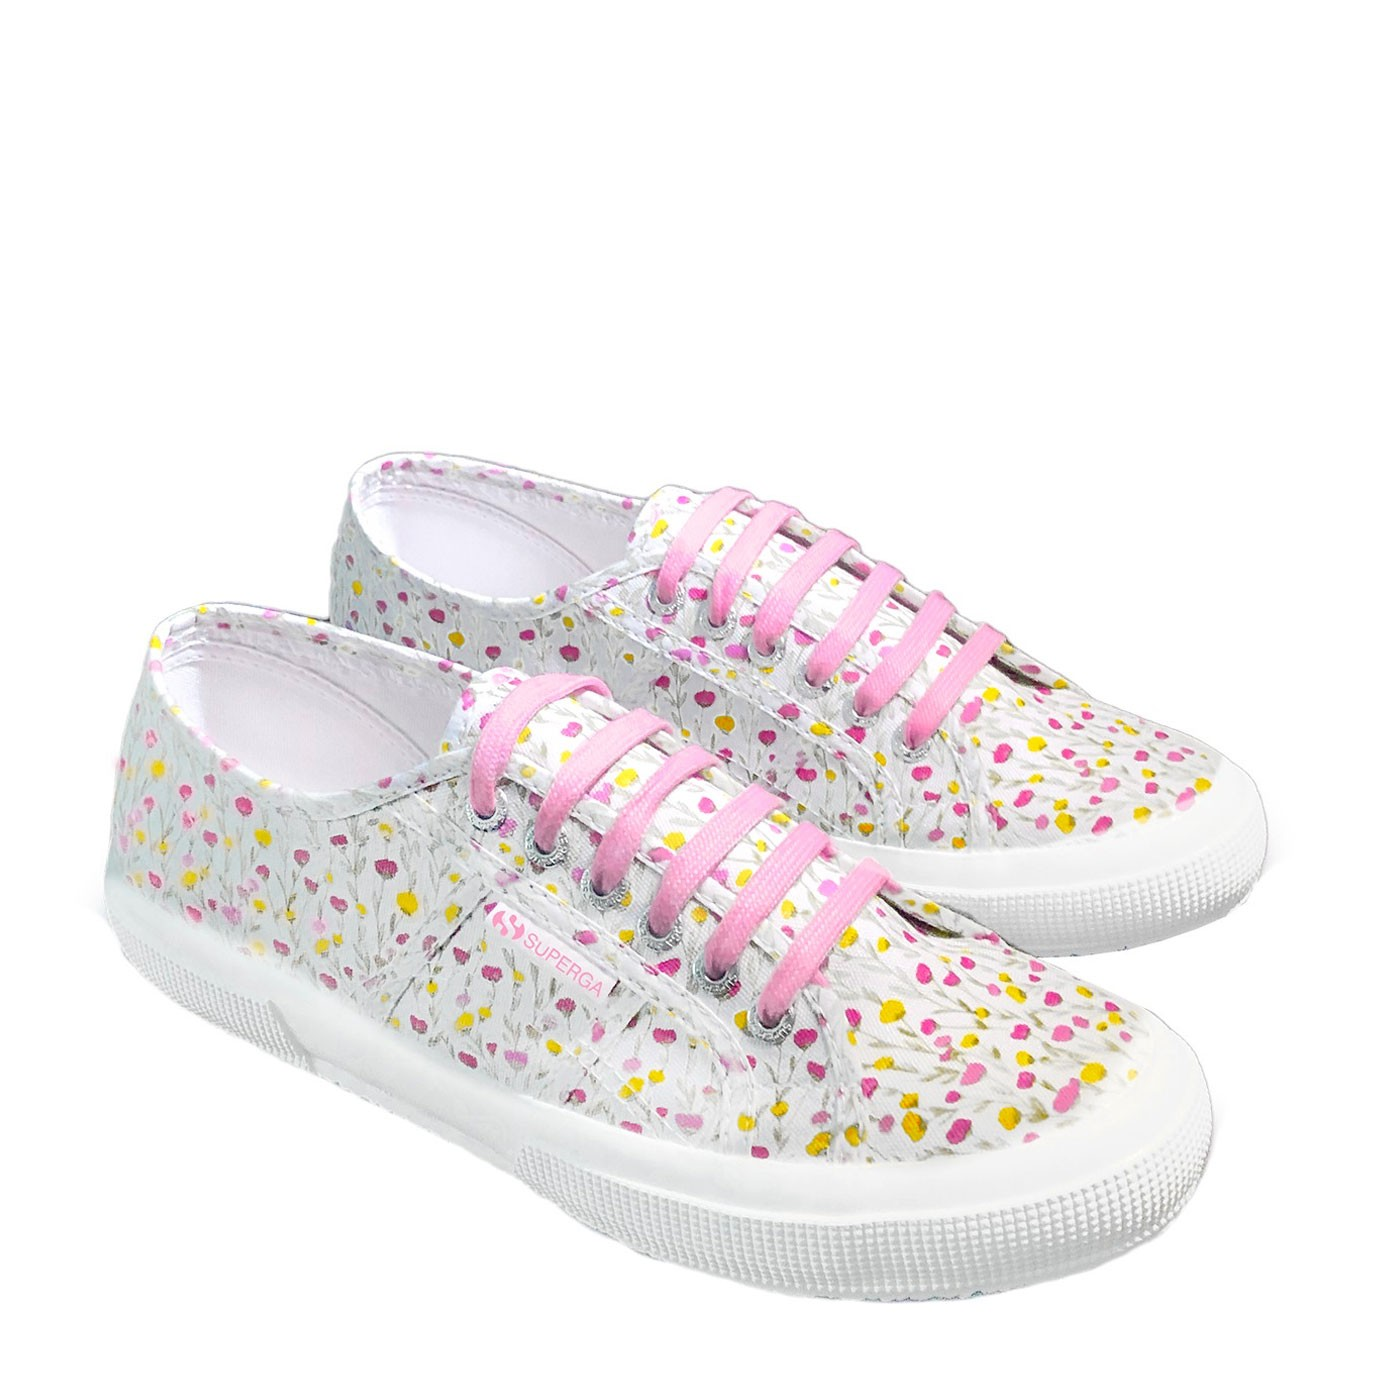 Floral Sneakers Size 35 - Superga